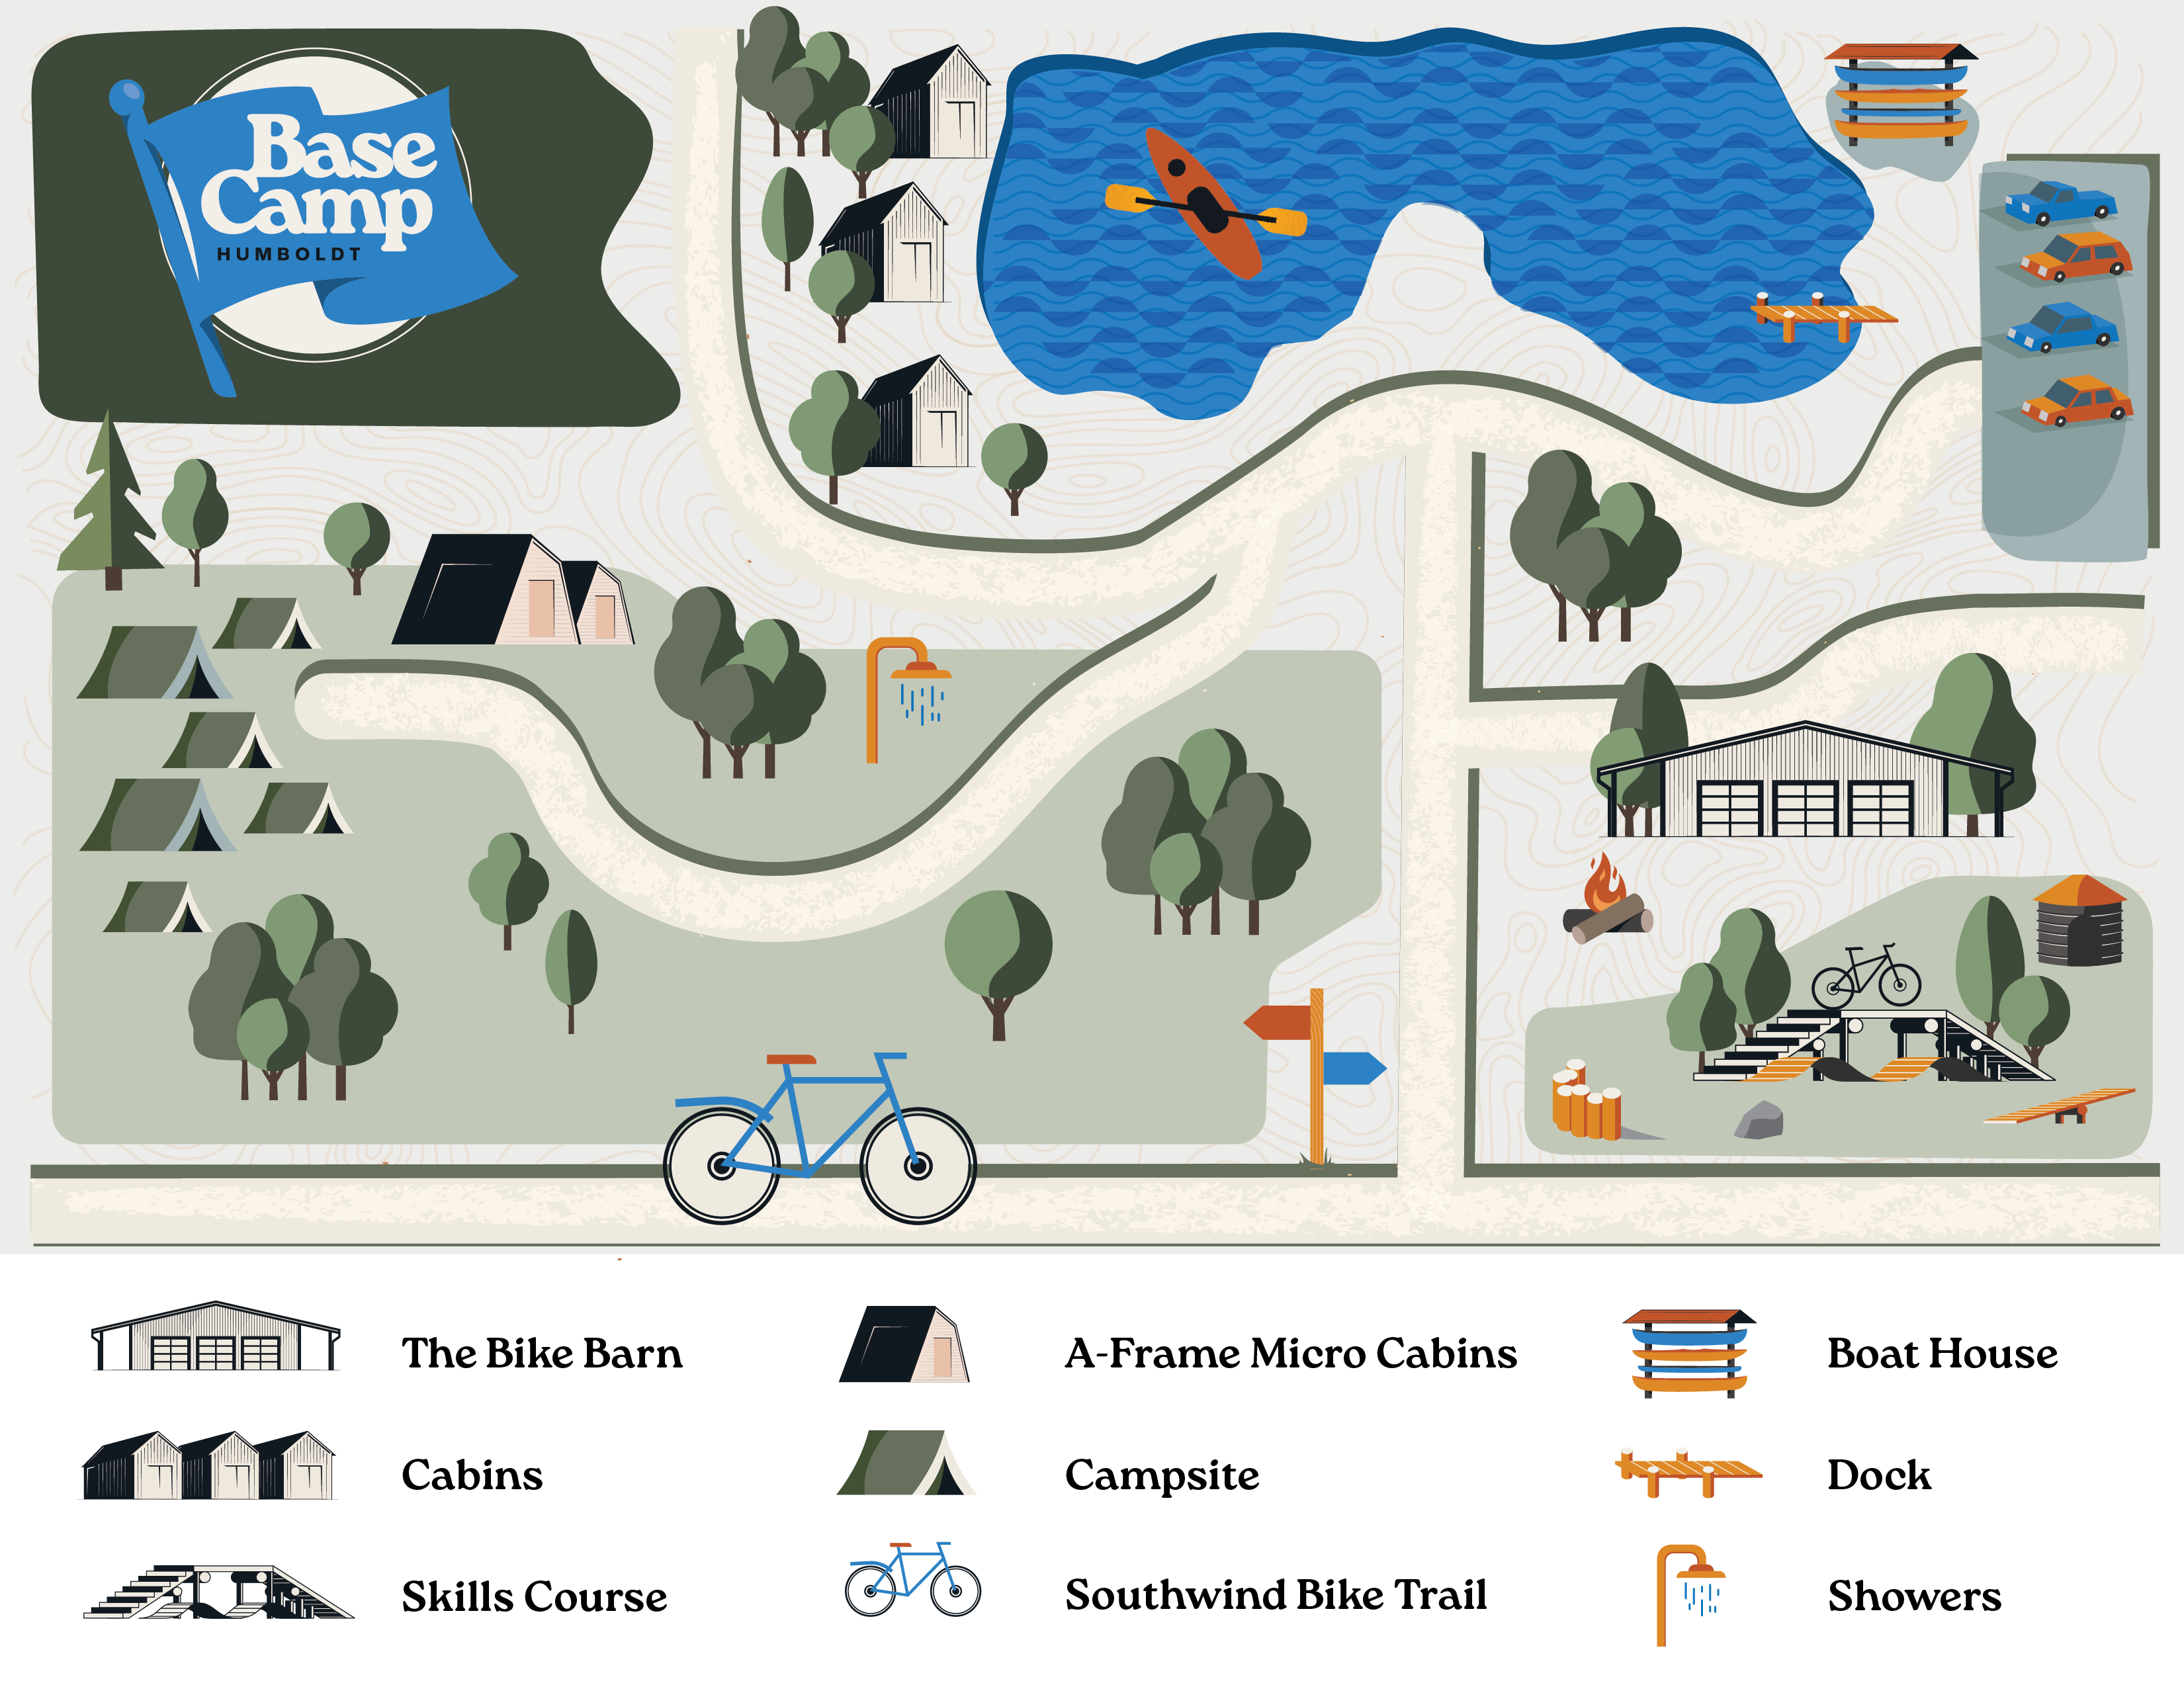 BaseCamp Humboldt map, for camping, glamping, biking, and all of our amenities.